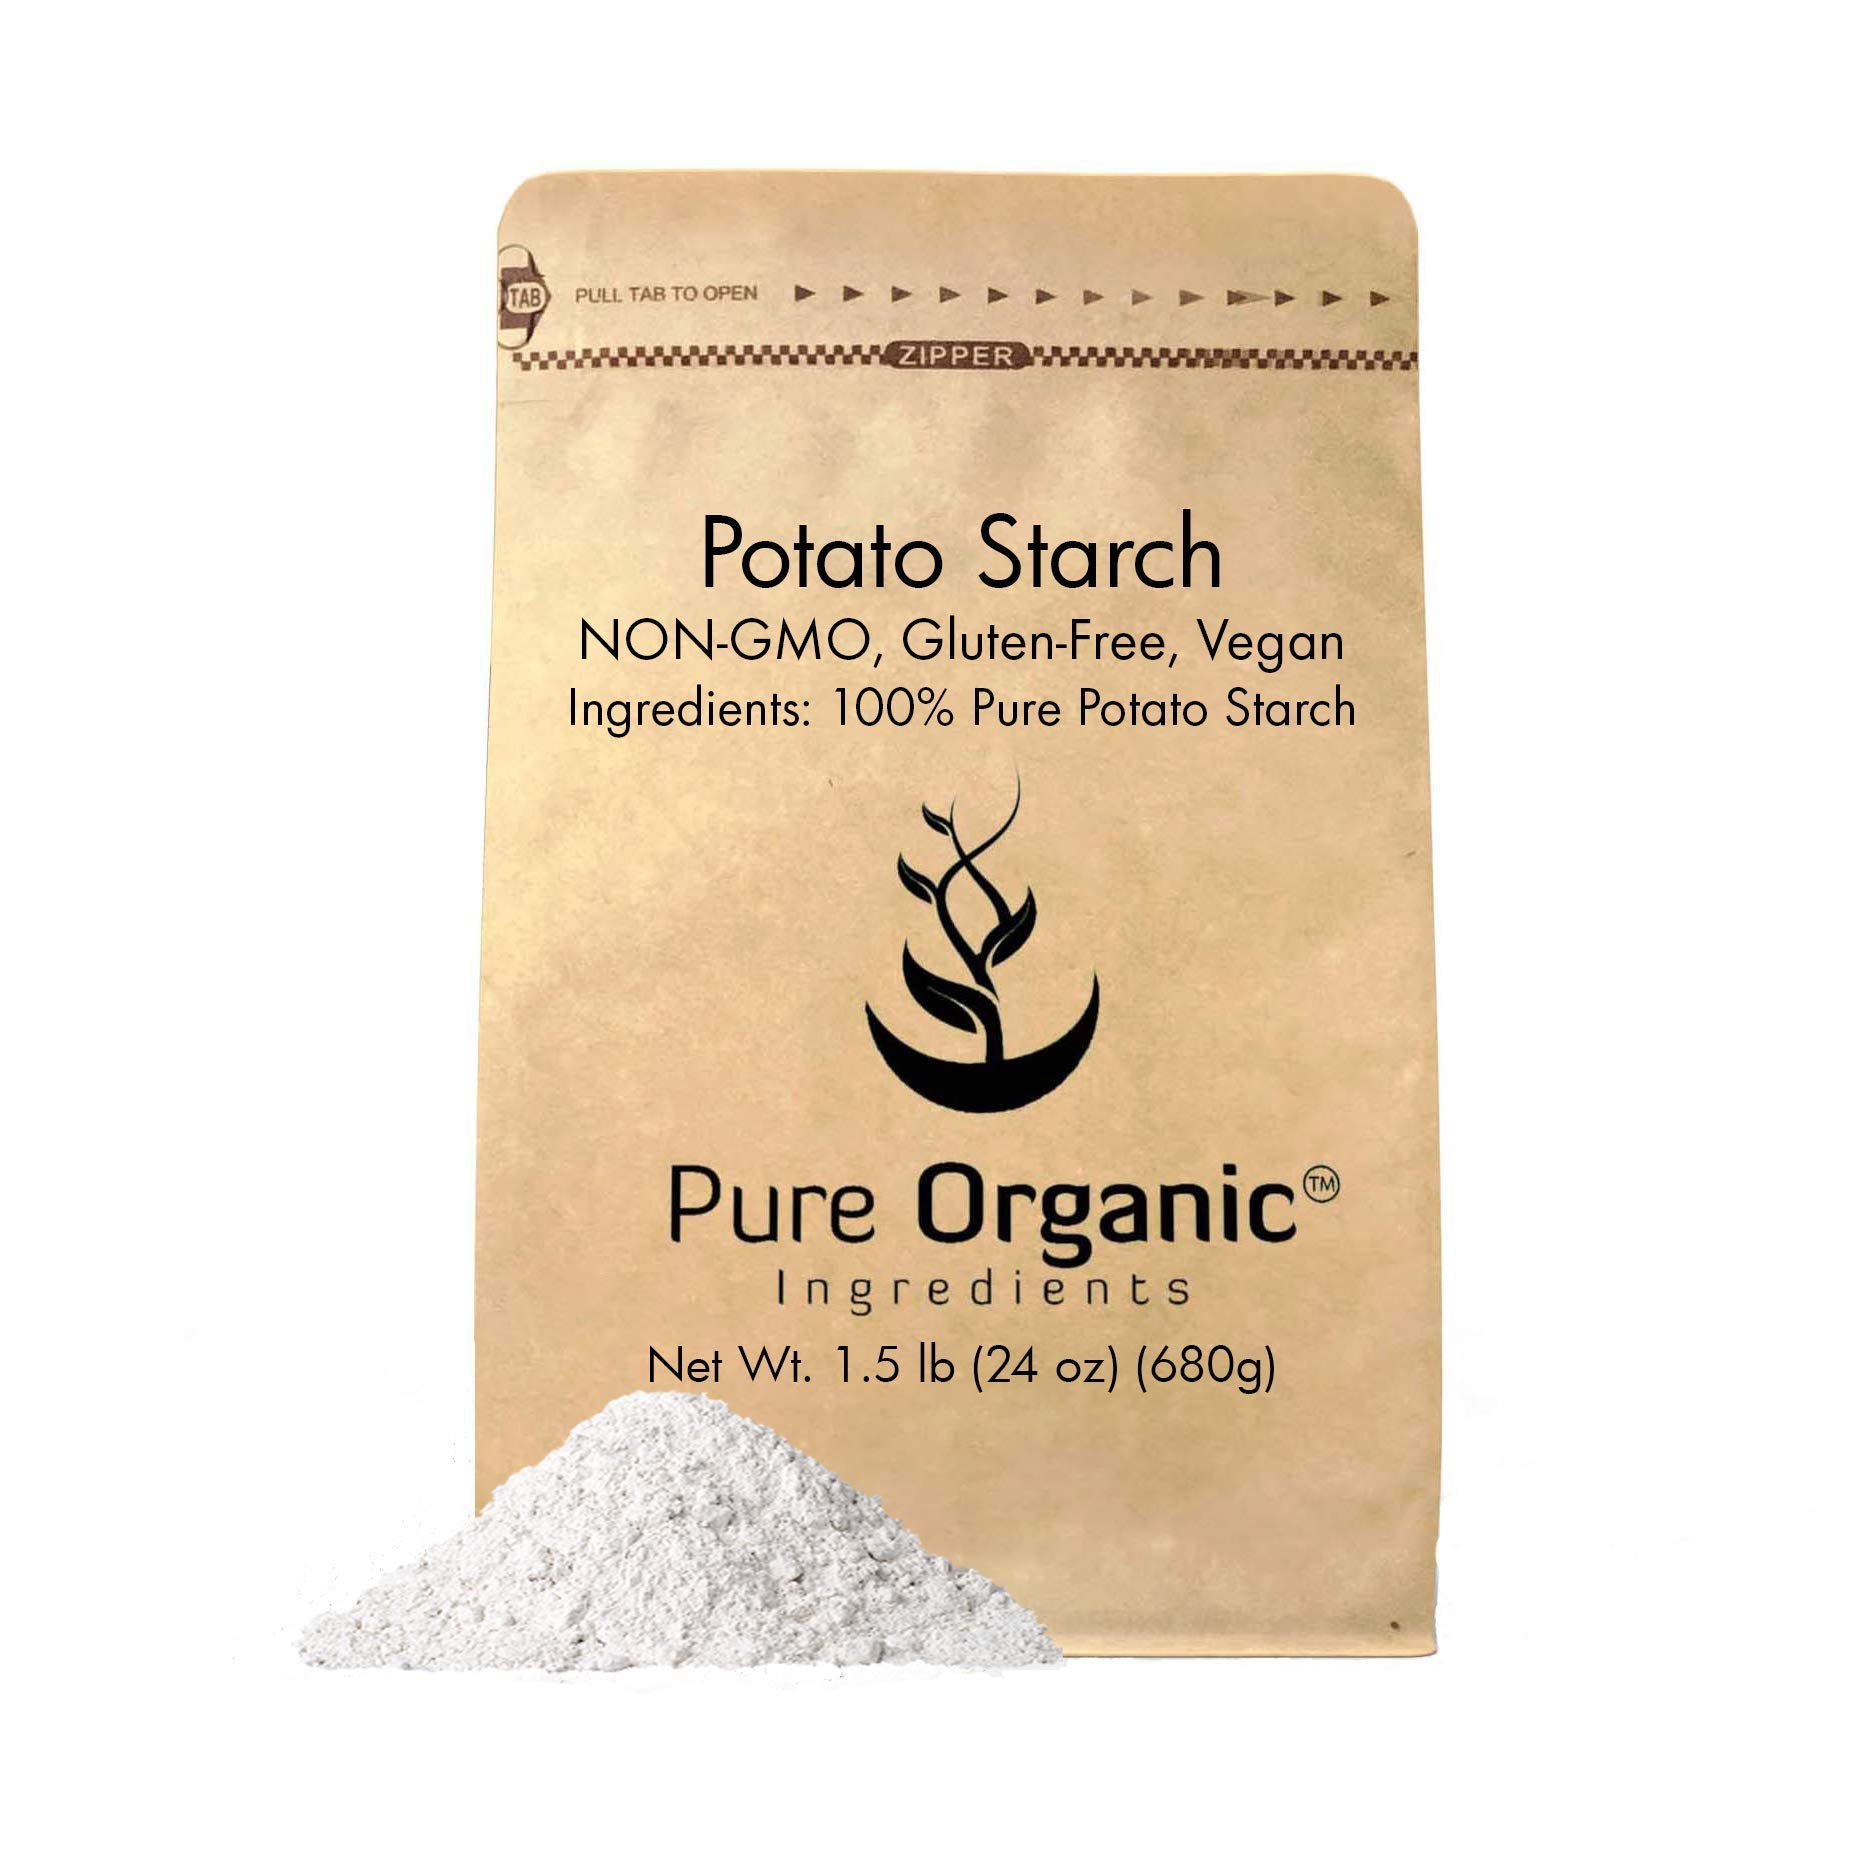 Potato Starch (1.5 lb.) by Pure Organic Ingredients, Resealable Bag, Gluten-Free, NON-GMO, All-Natural, Thickener For Sauces, Soup, Gravy, No Added Preservatives Or Artificial Ingredients